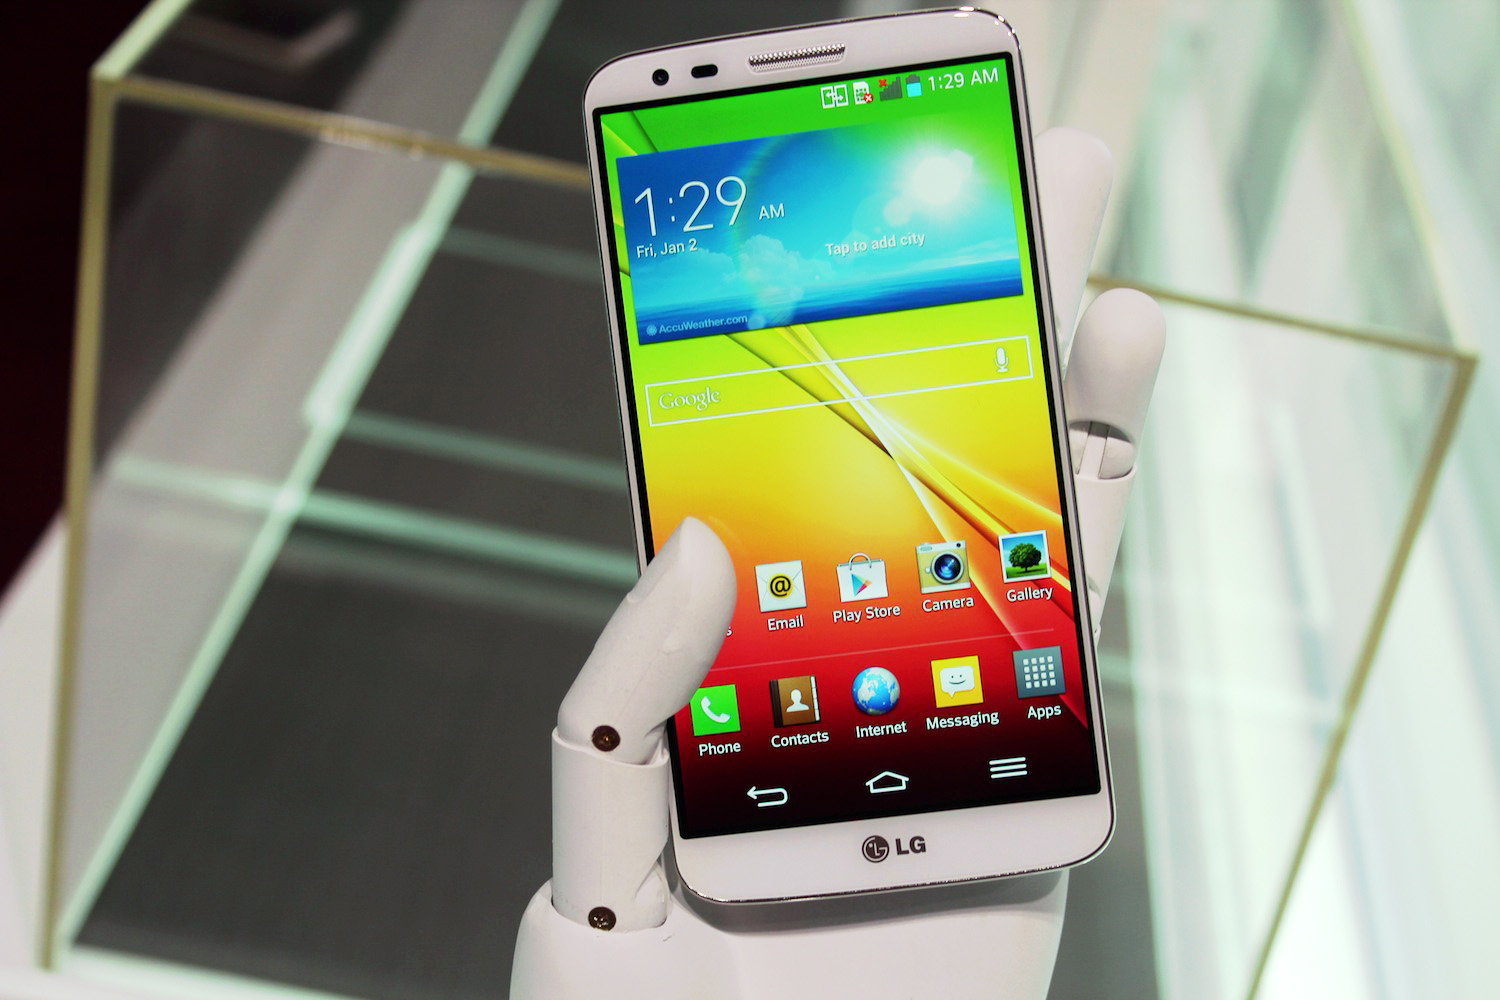 Hands-on with the LG G2: It's got buttons on the back